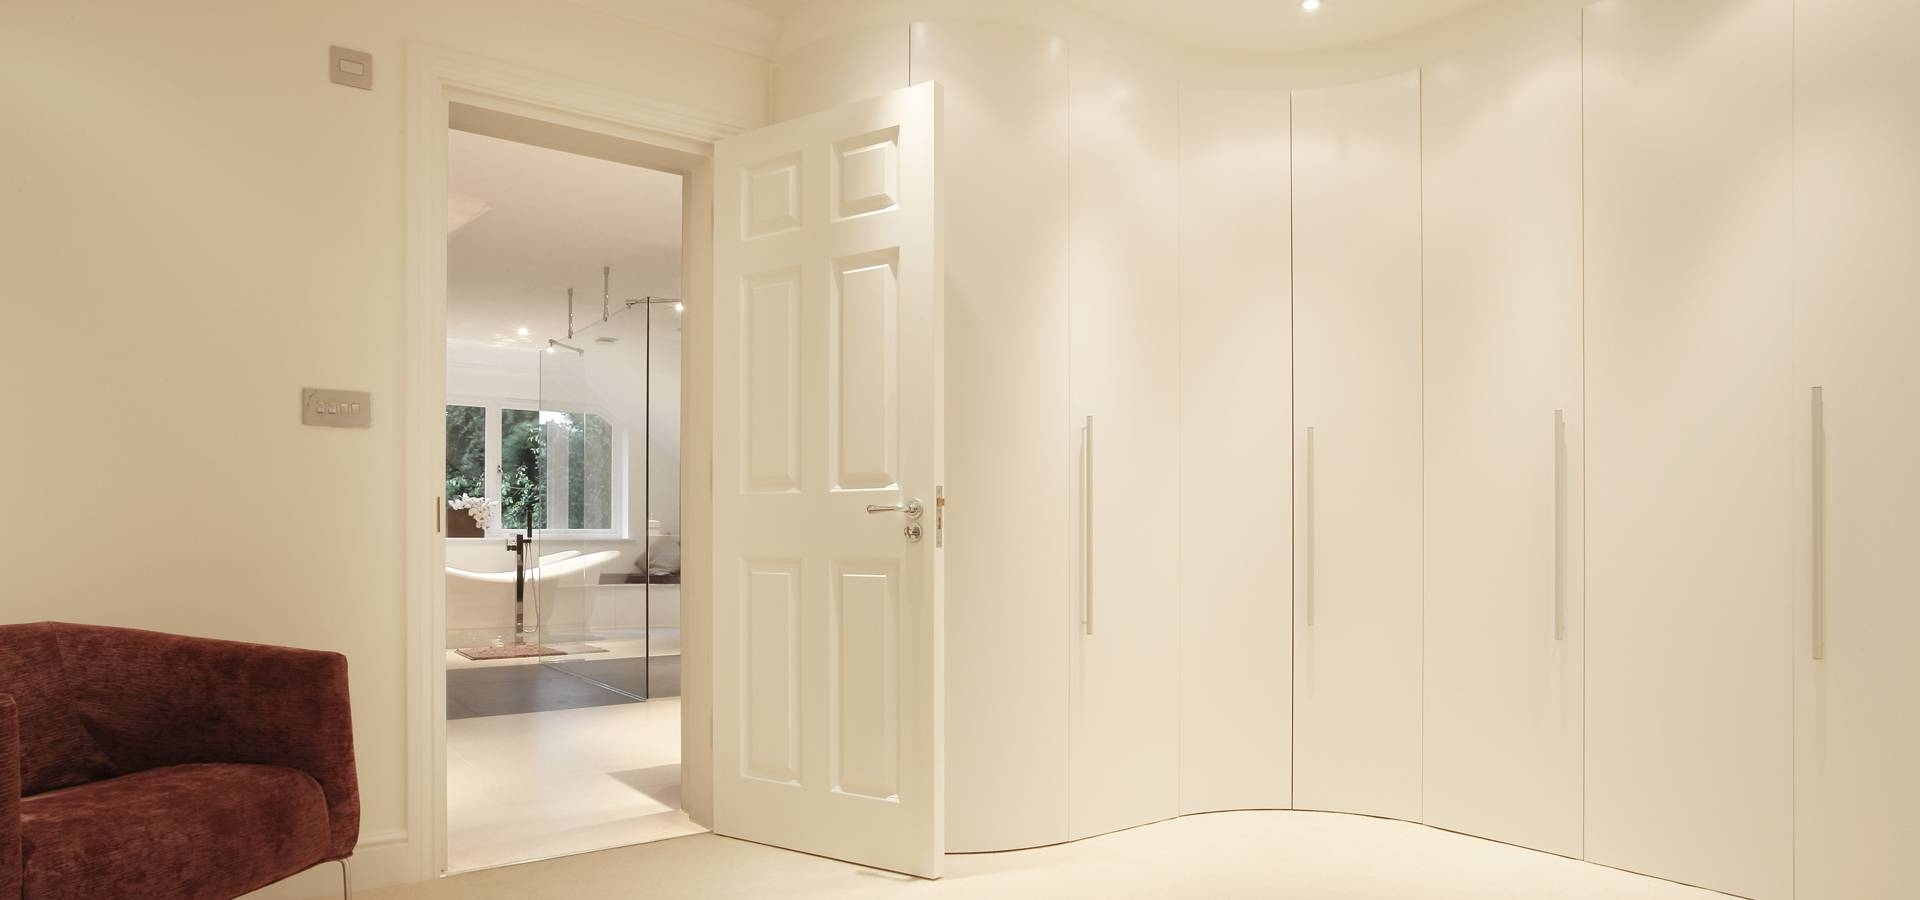 Alfa Curve - Fitted Bedroom Furniture | Wardrobes Uk | Lawrence for Curved Wardrobe Doors (Image 2 of 30)